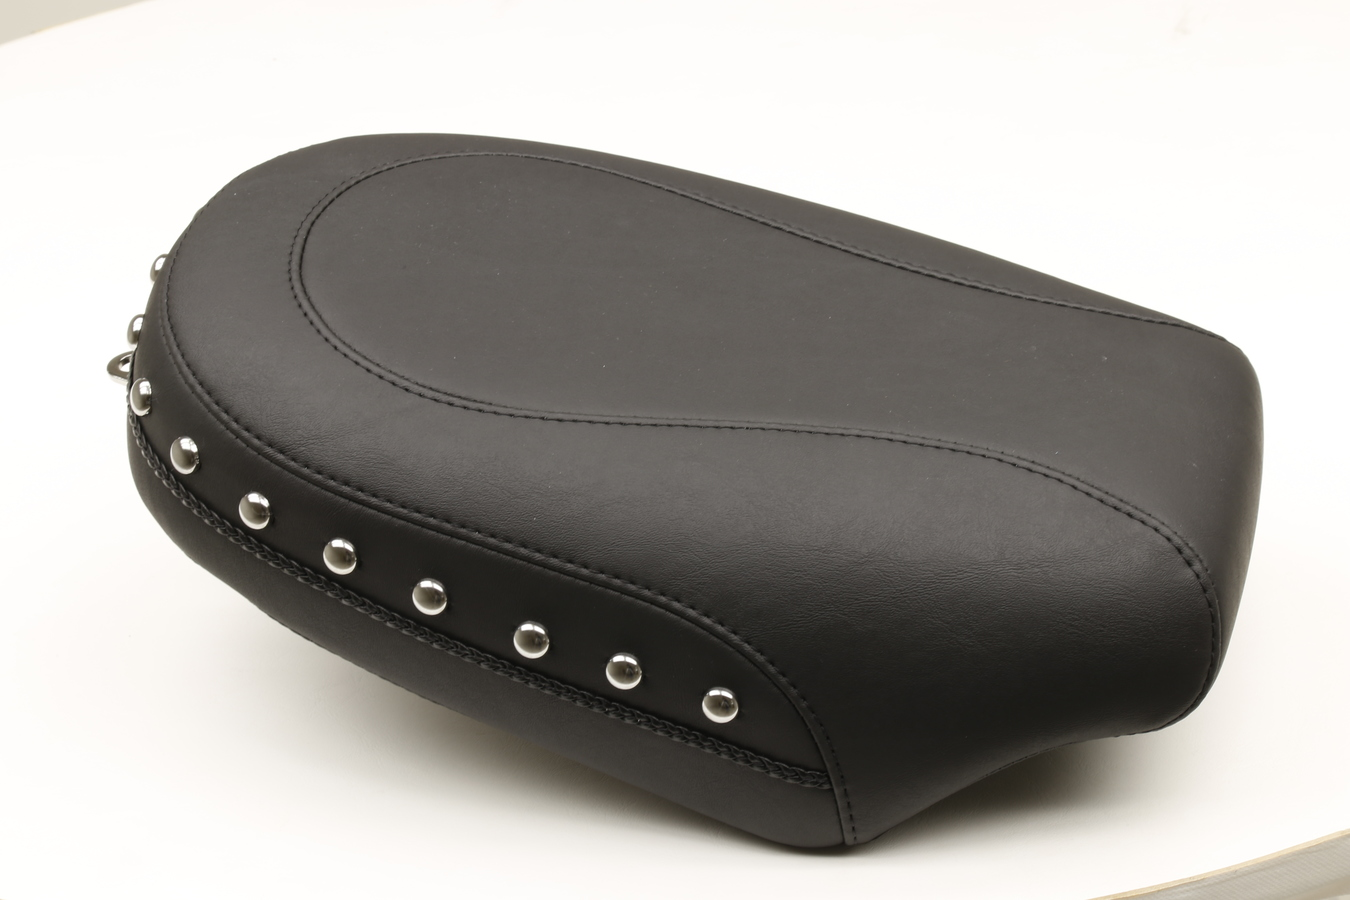 Passenger Seat for H-D Wide Touring, Chrome Studded, Black, Width: 8""